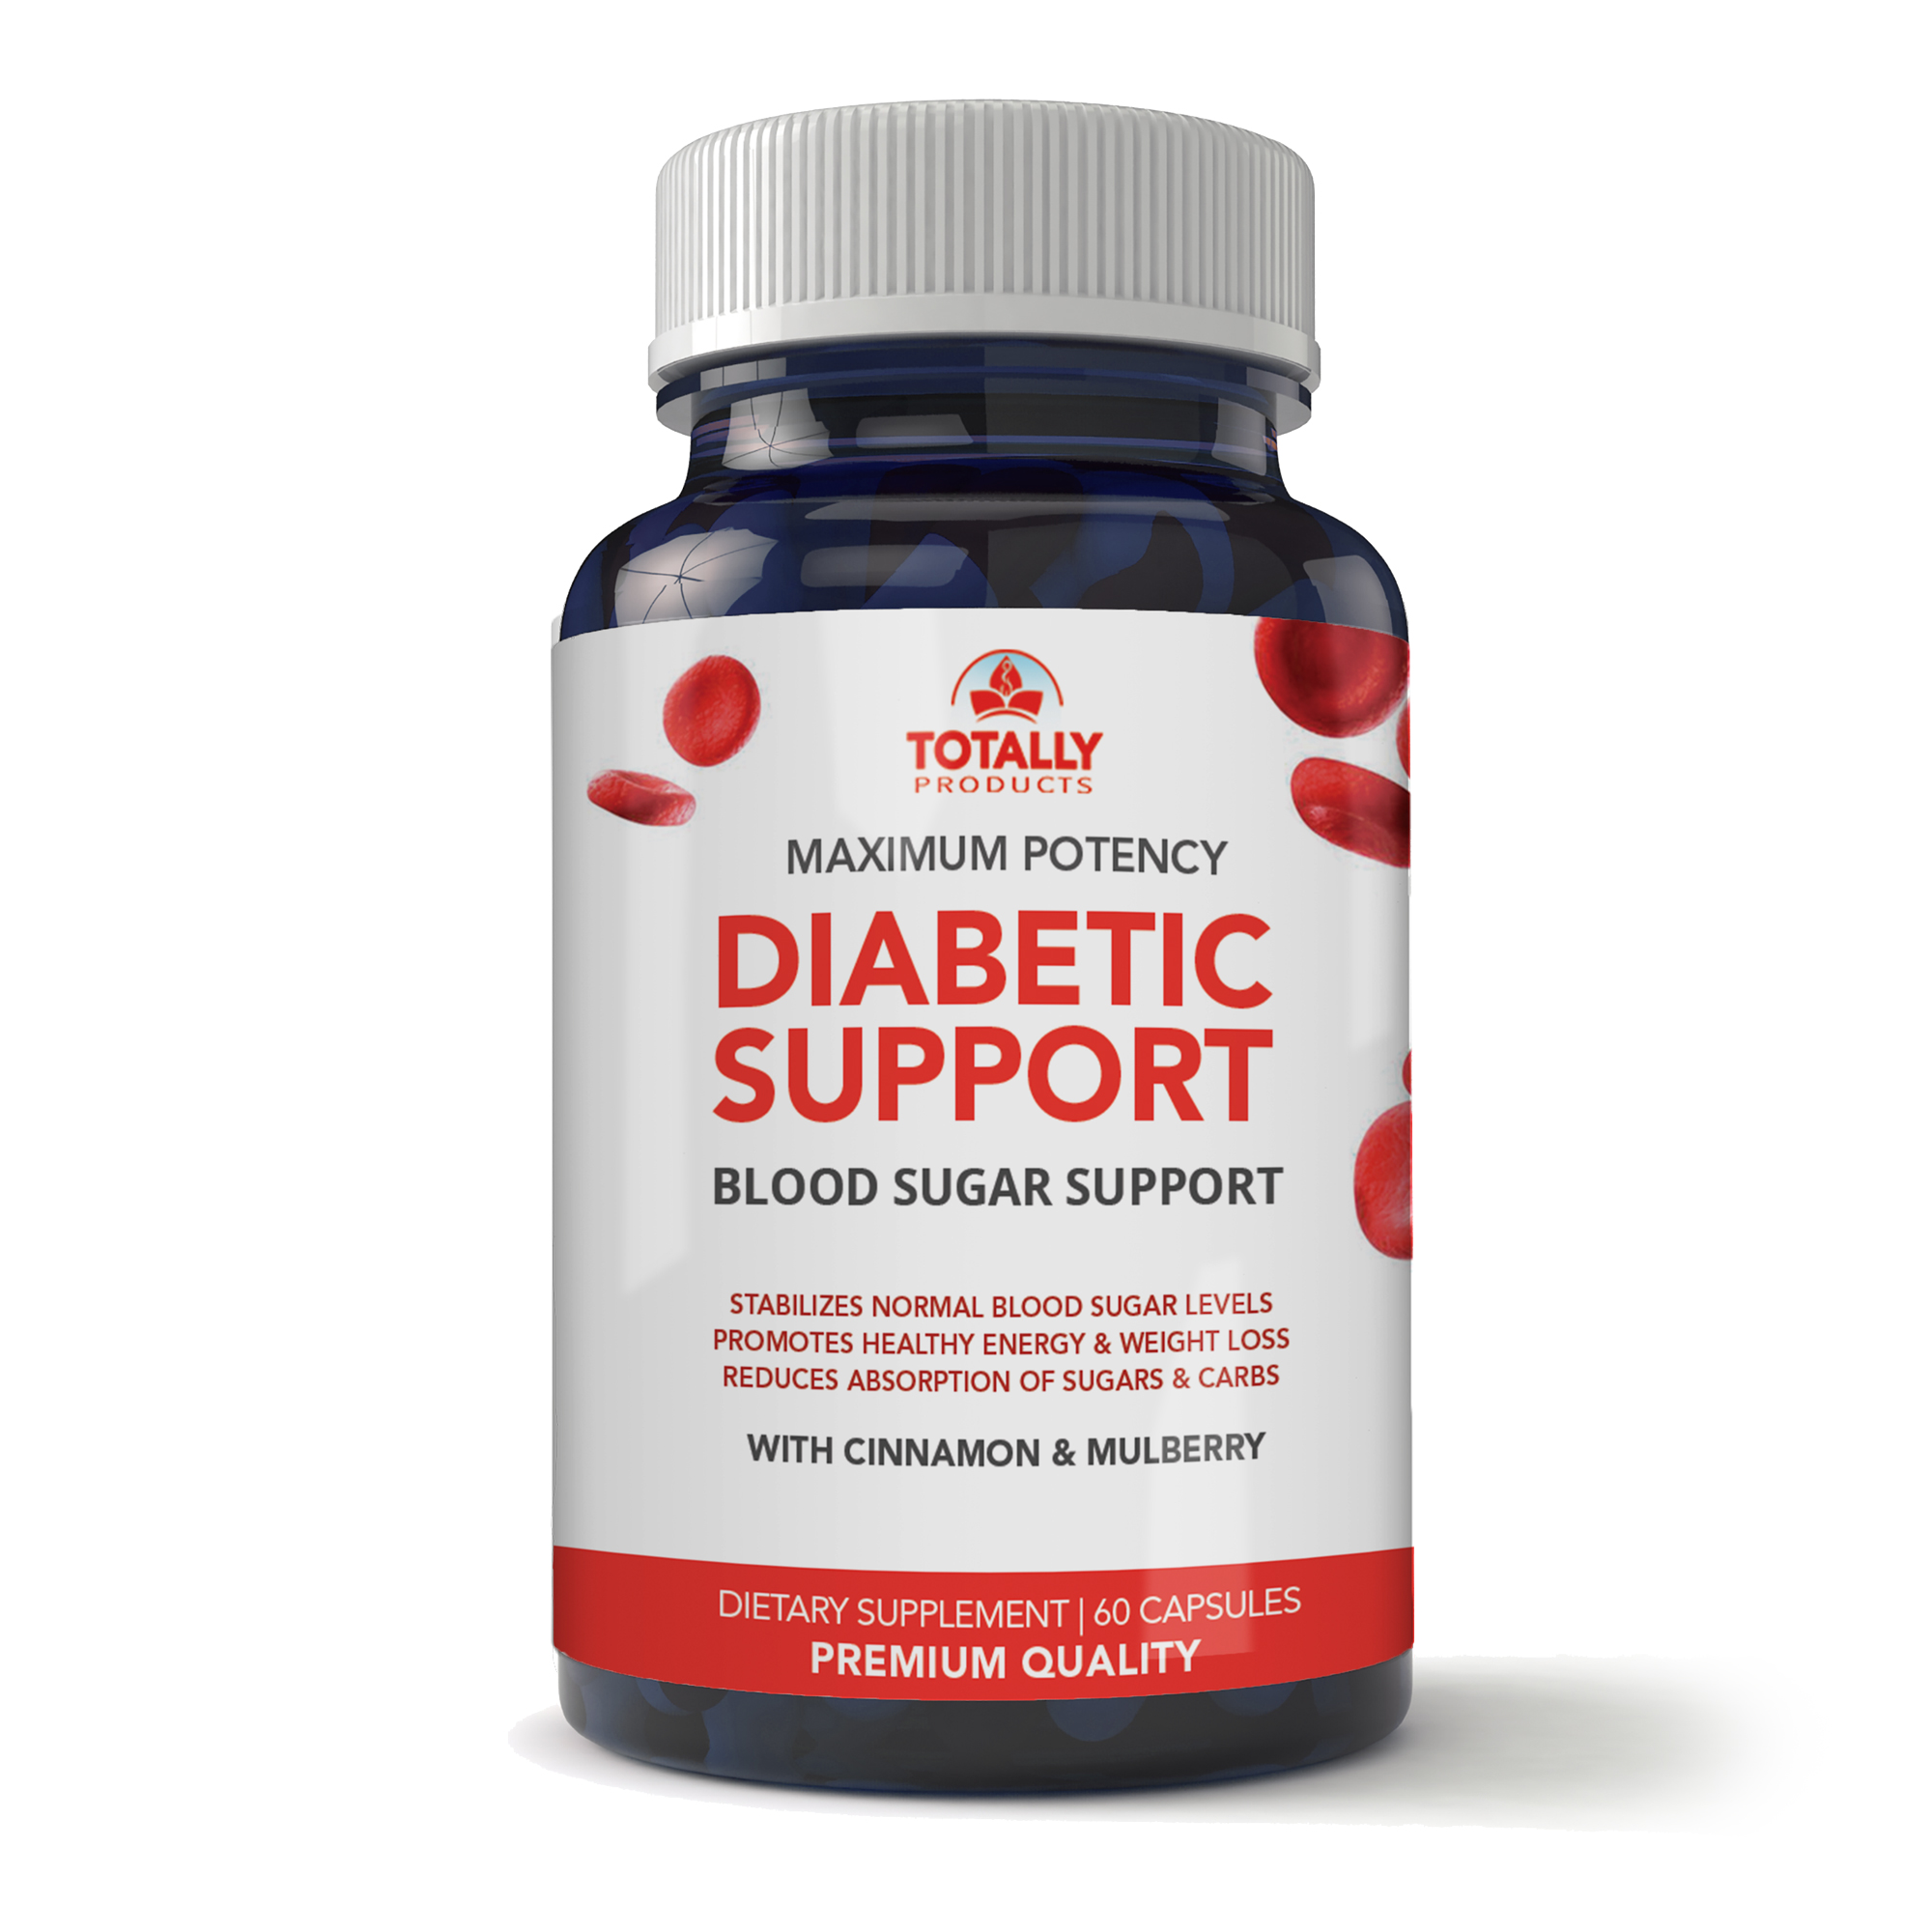 Totally Products Advanced Diabetic Support and weight loss